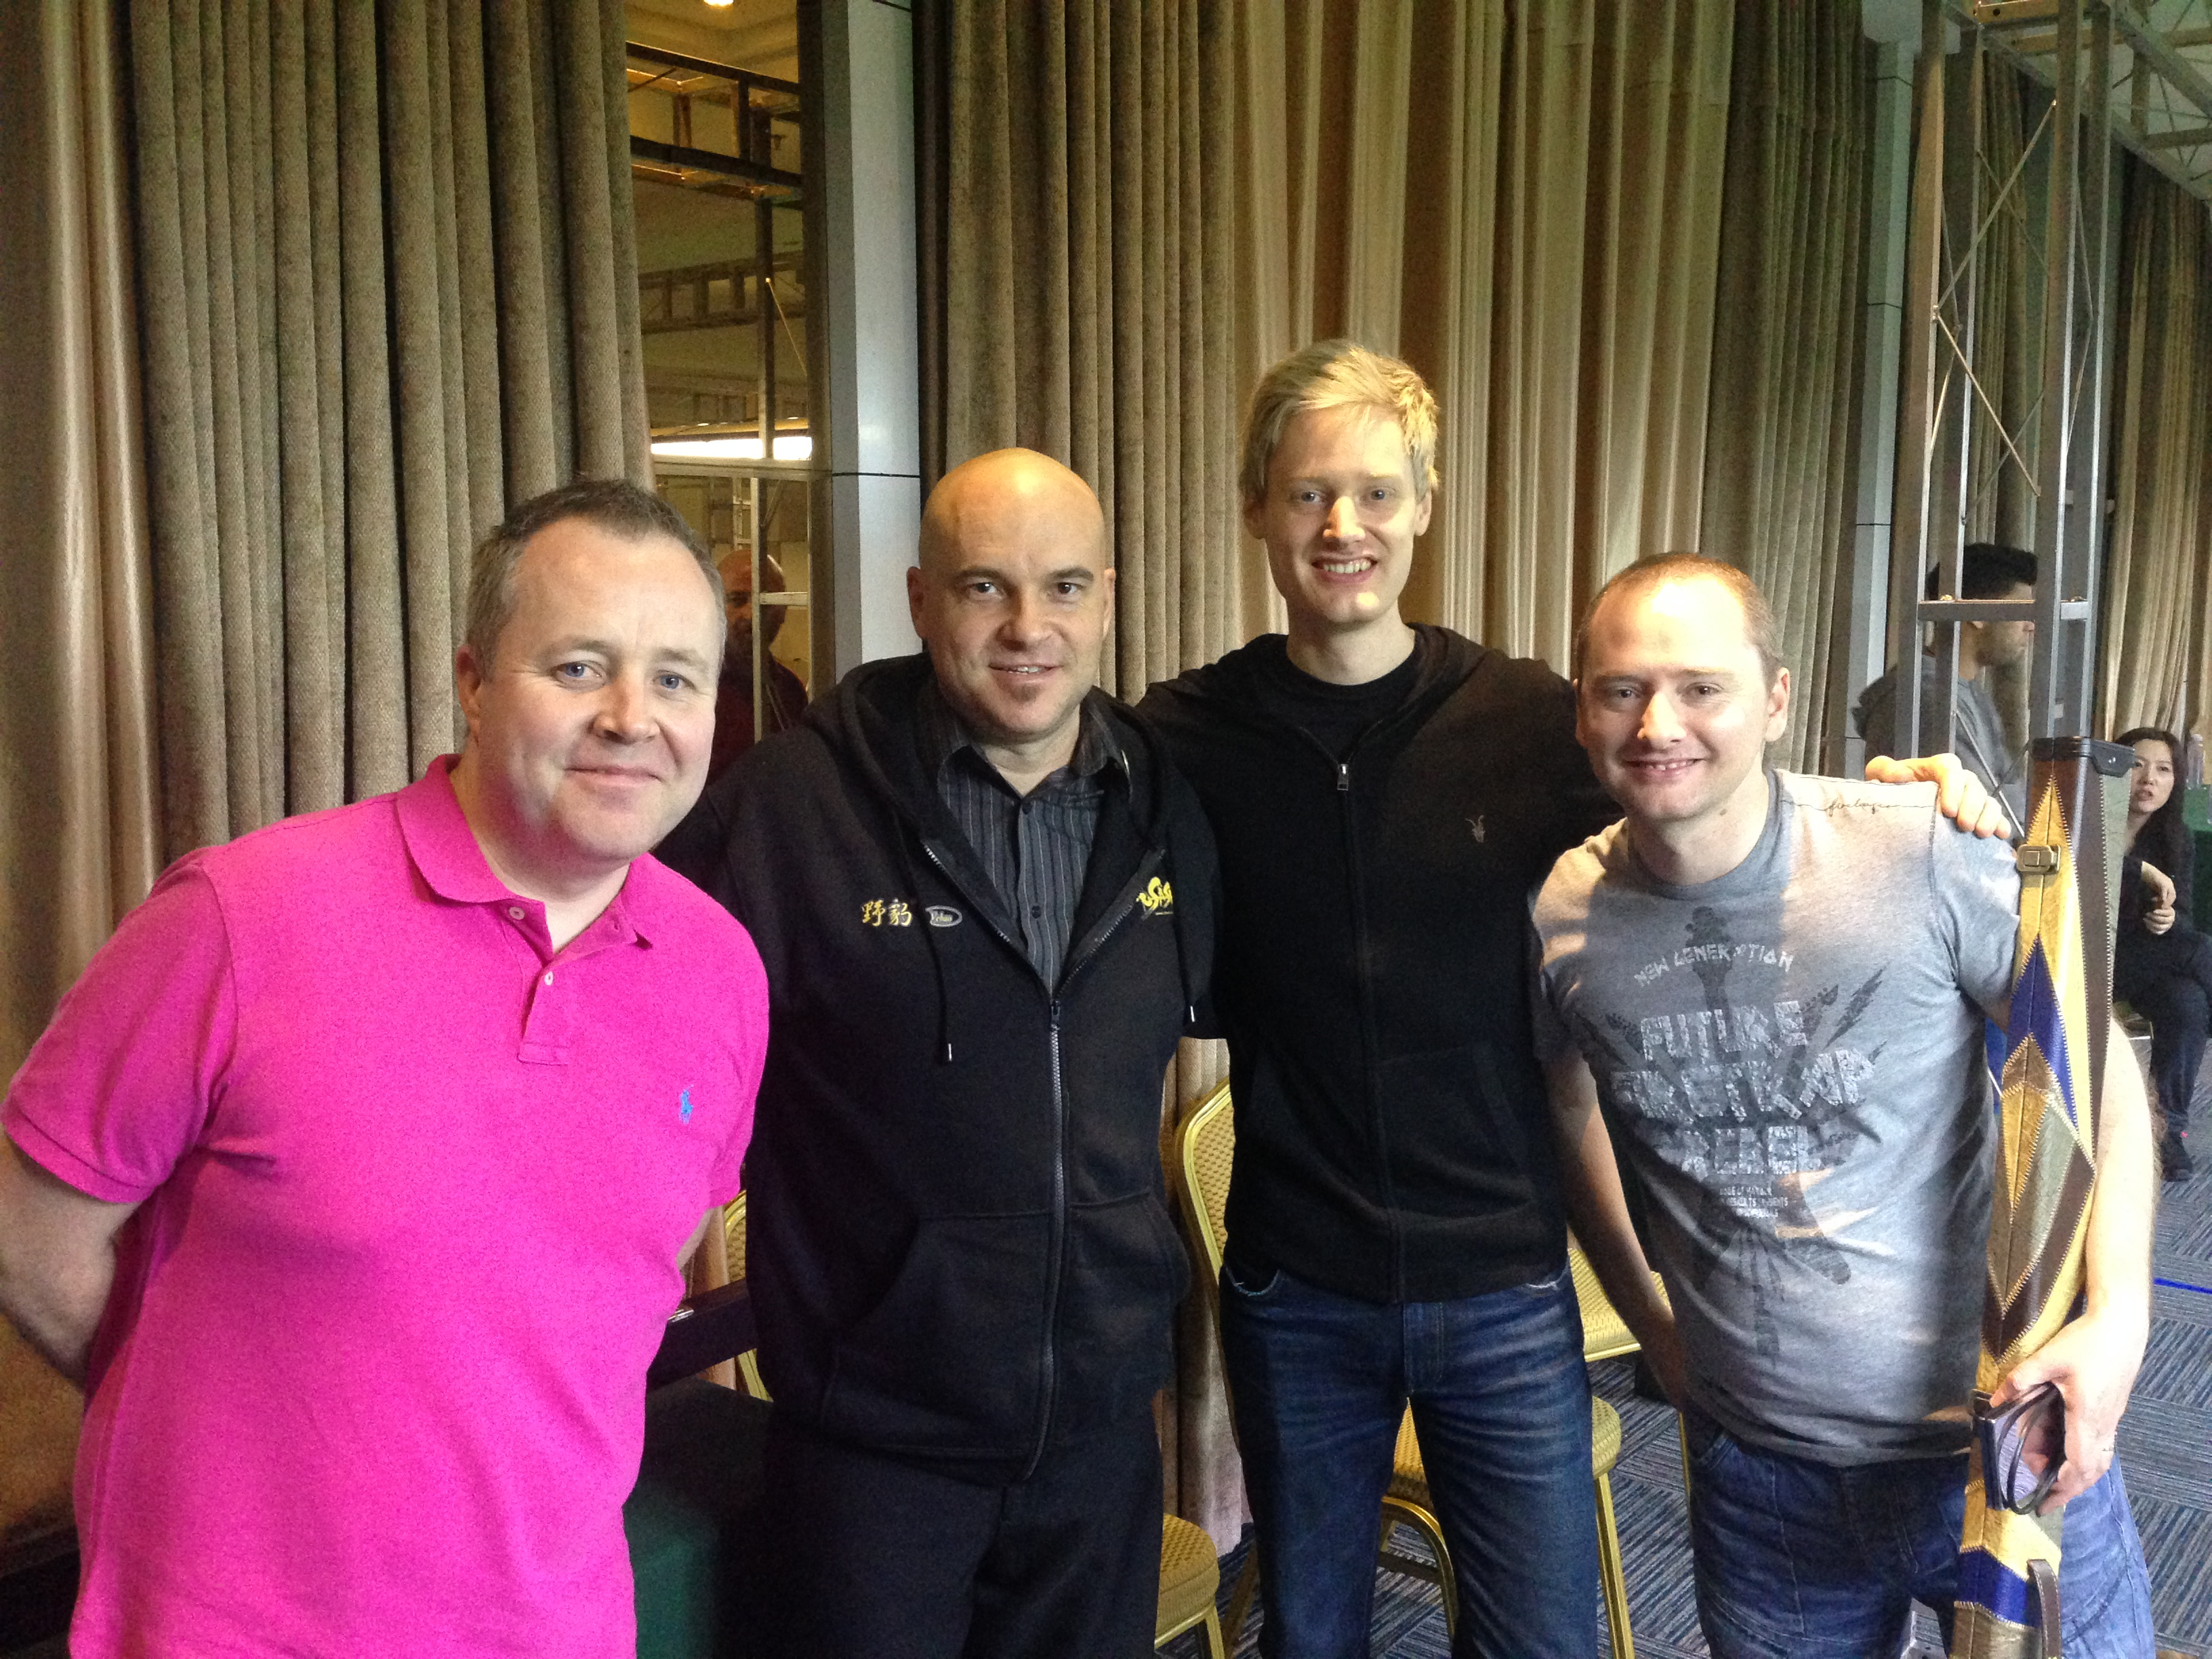 china billiard world championship 8 ball 2015 john higgins max eberle niel robertson graeme dott